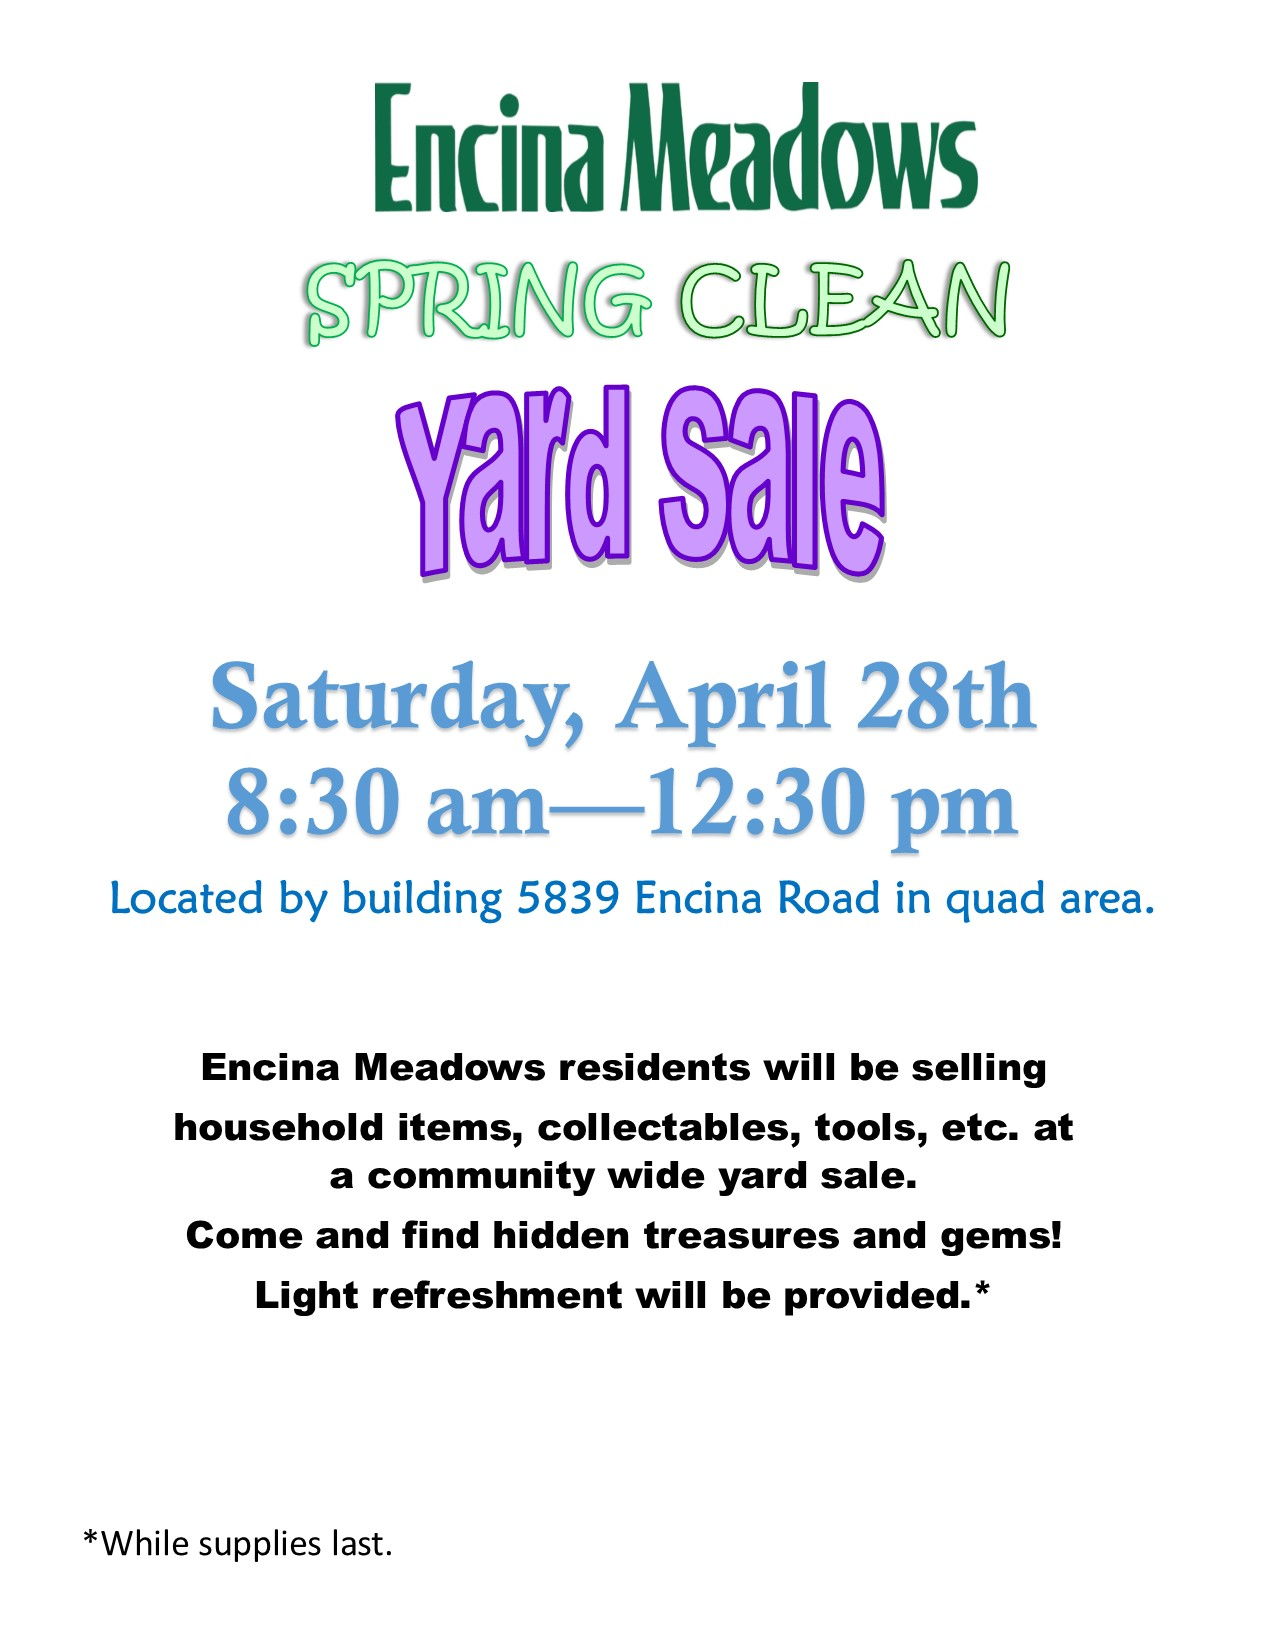 Yard Sale, Garage Sale, Estate Sale, Community Swap Meet